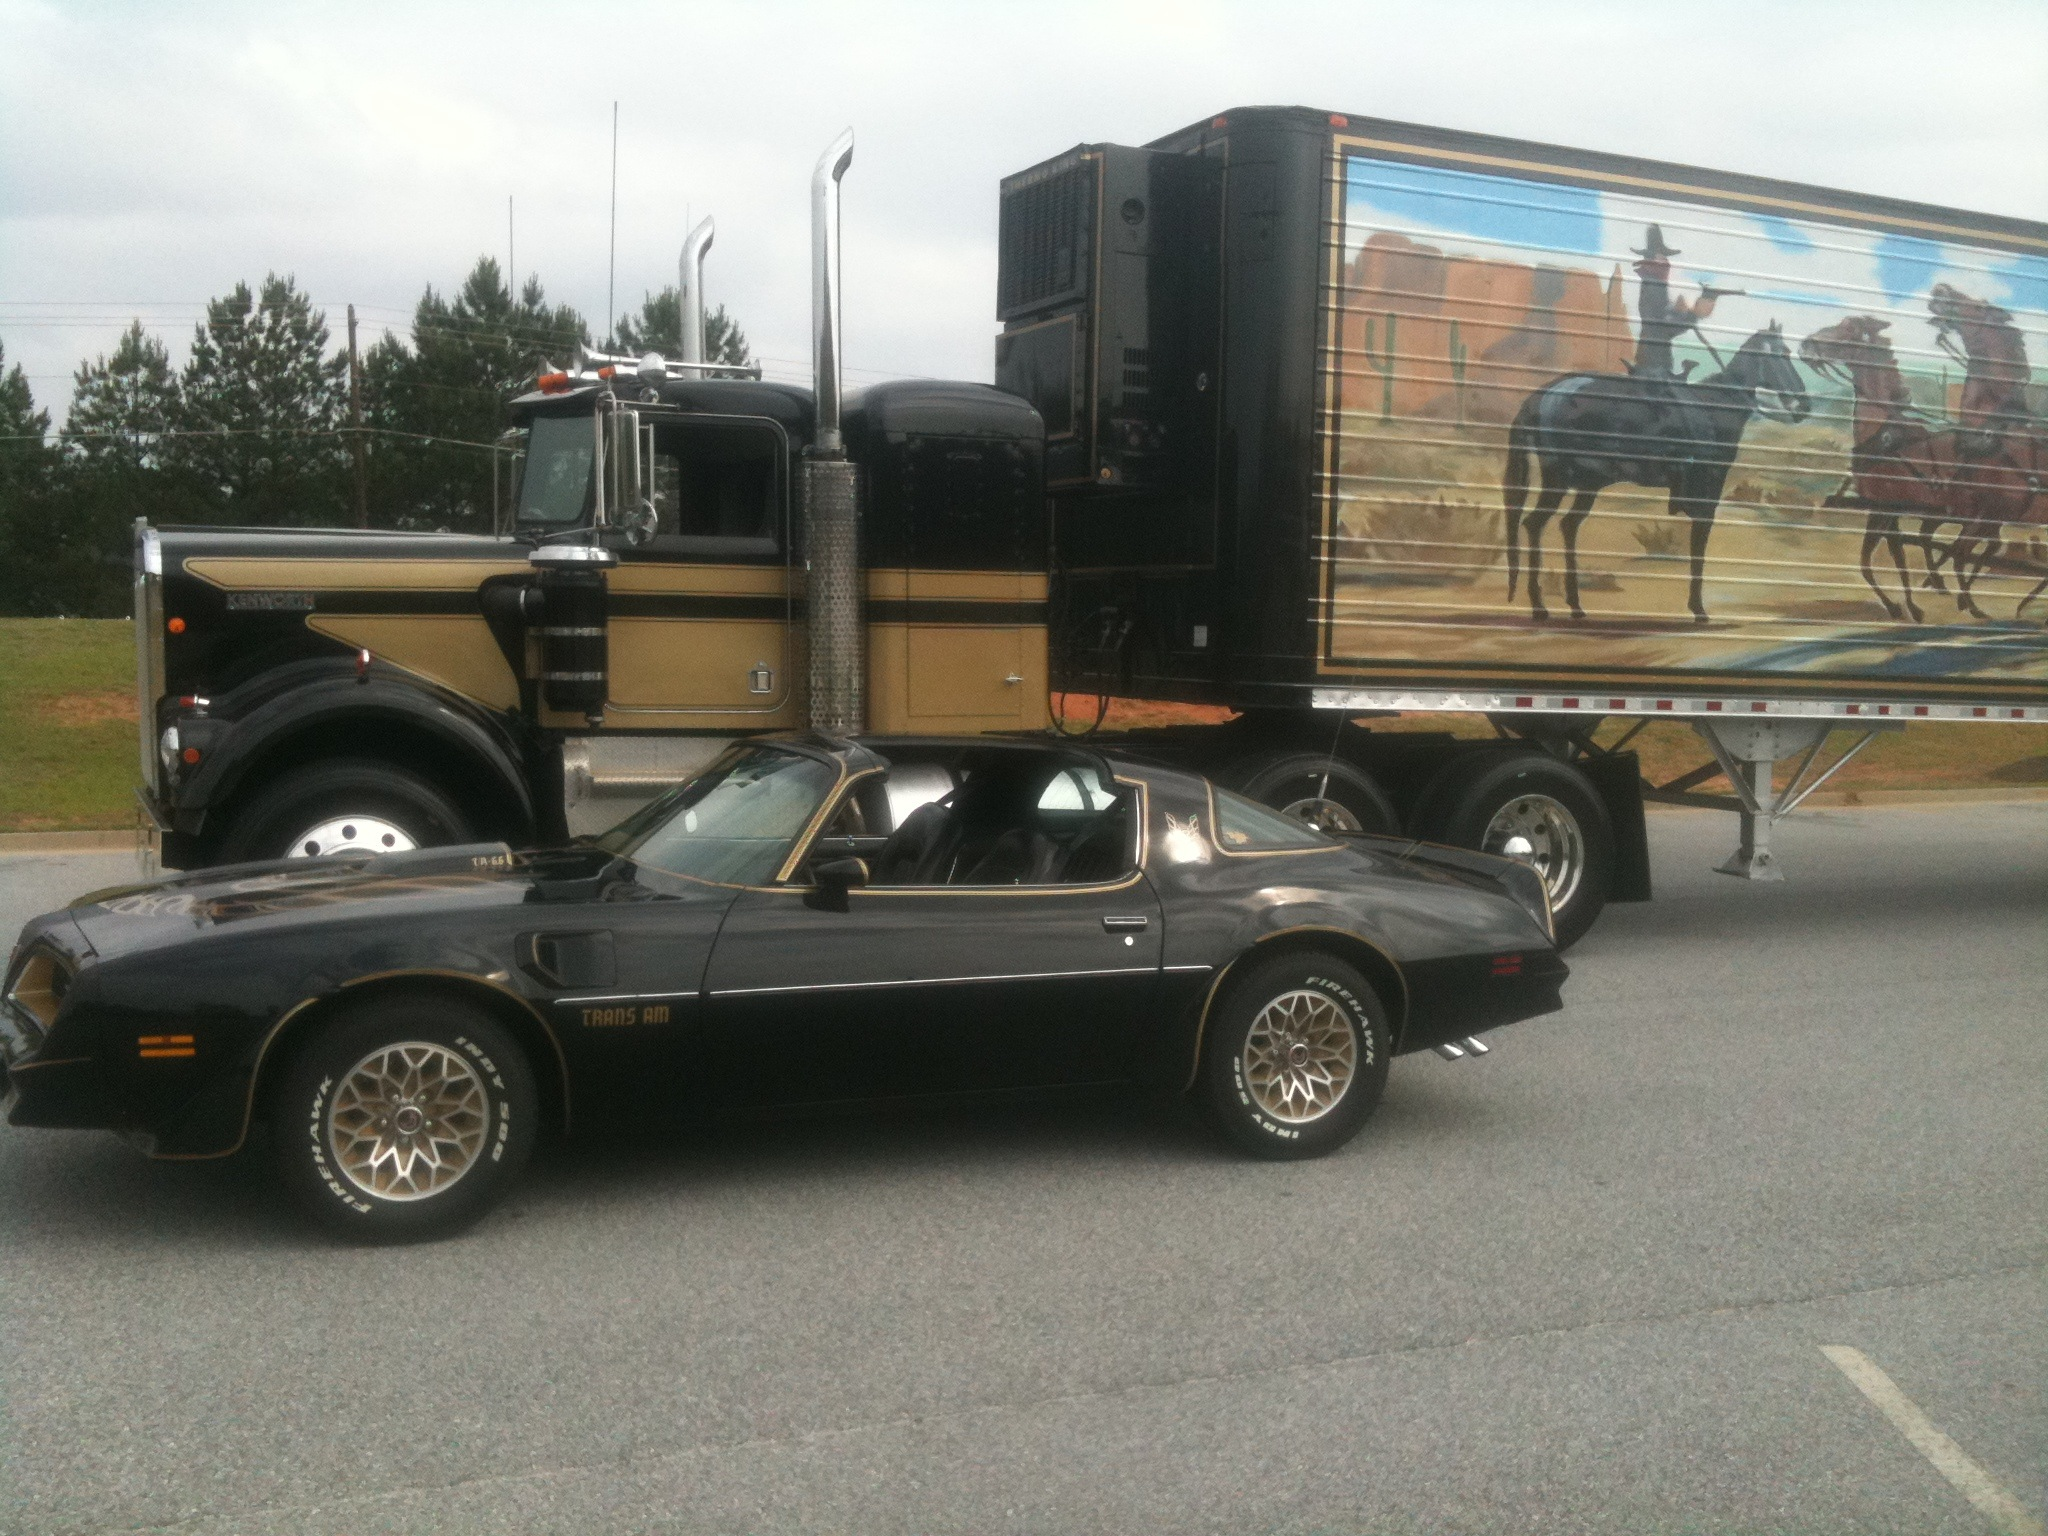 The iconic Trans Am and big rig, together again.